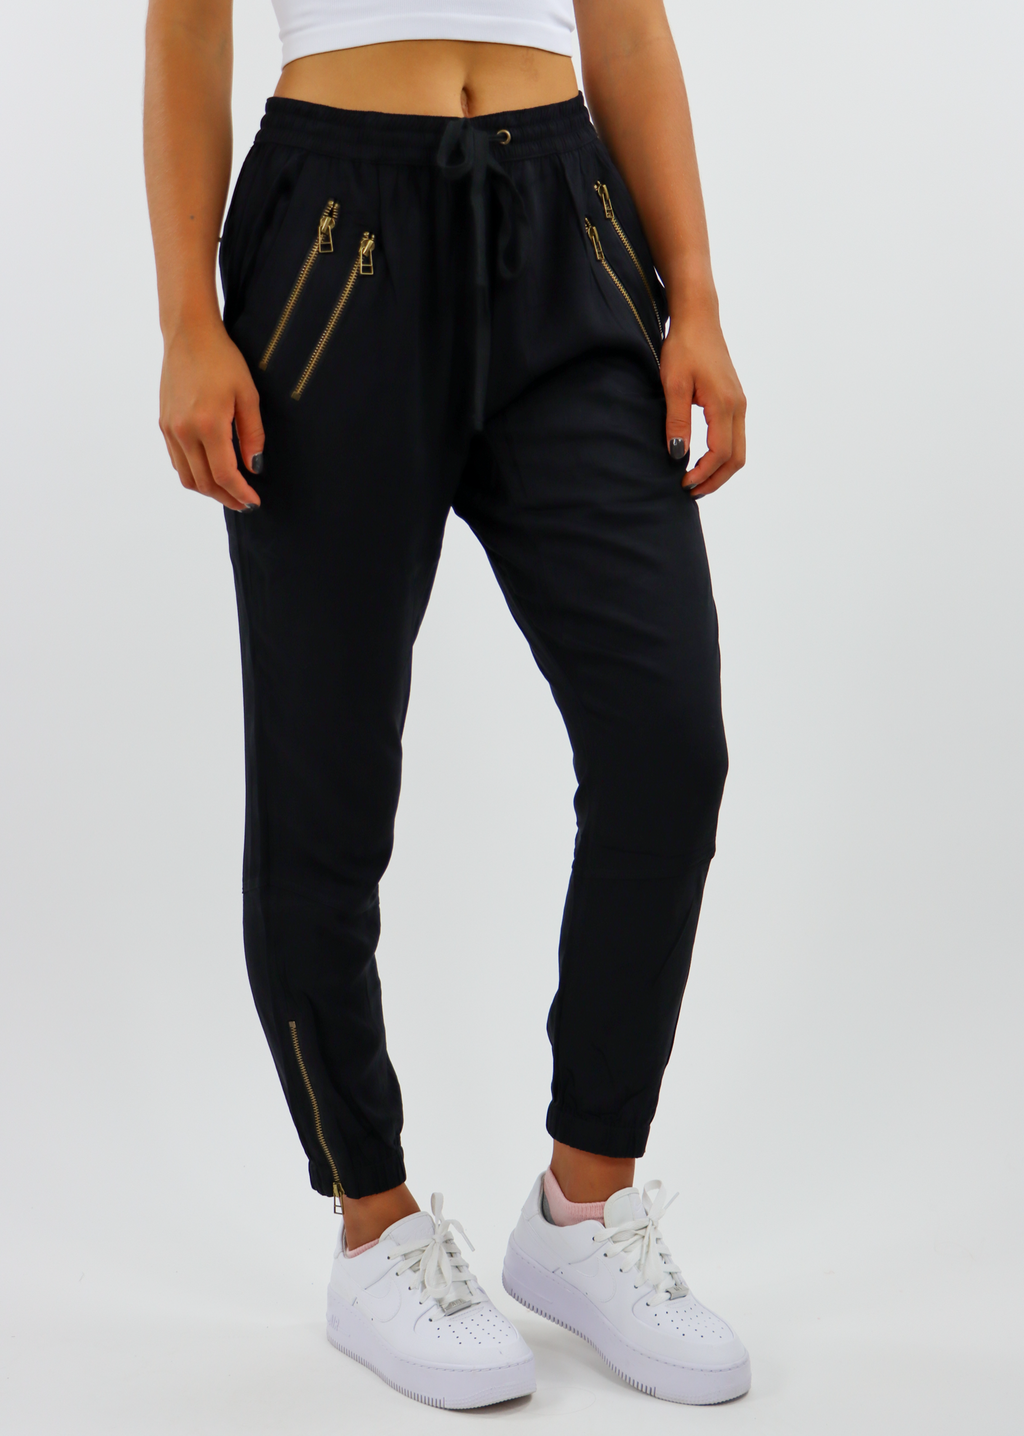 Zip It Up Joggers ★ Black